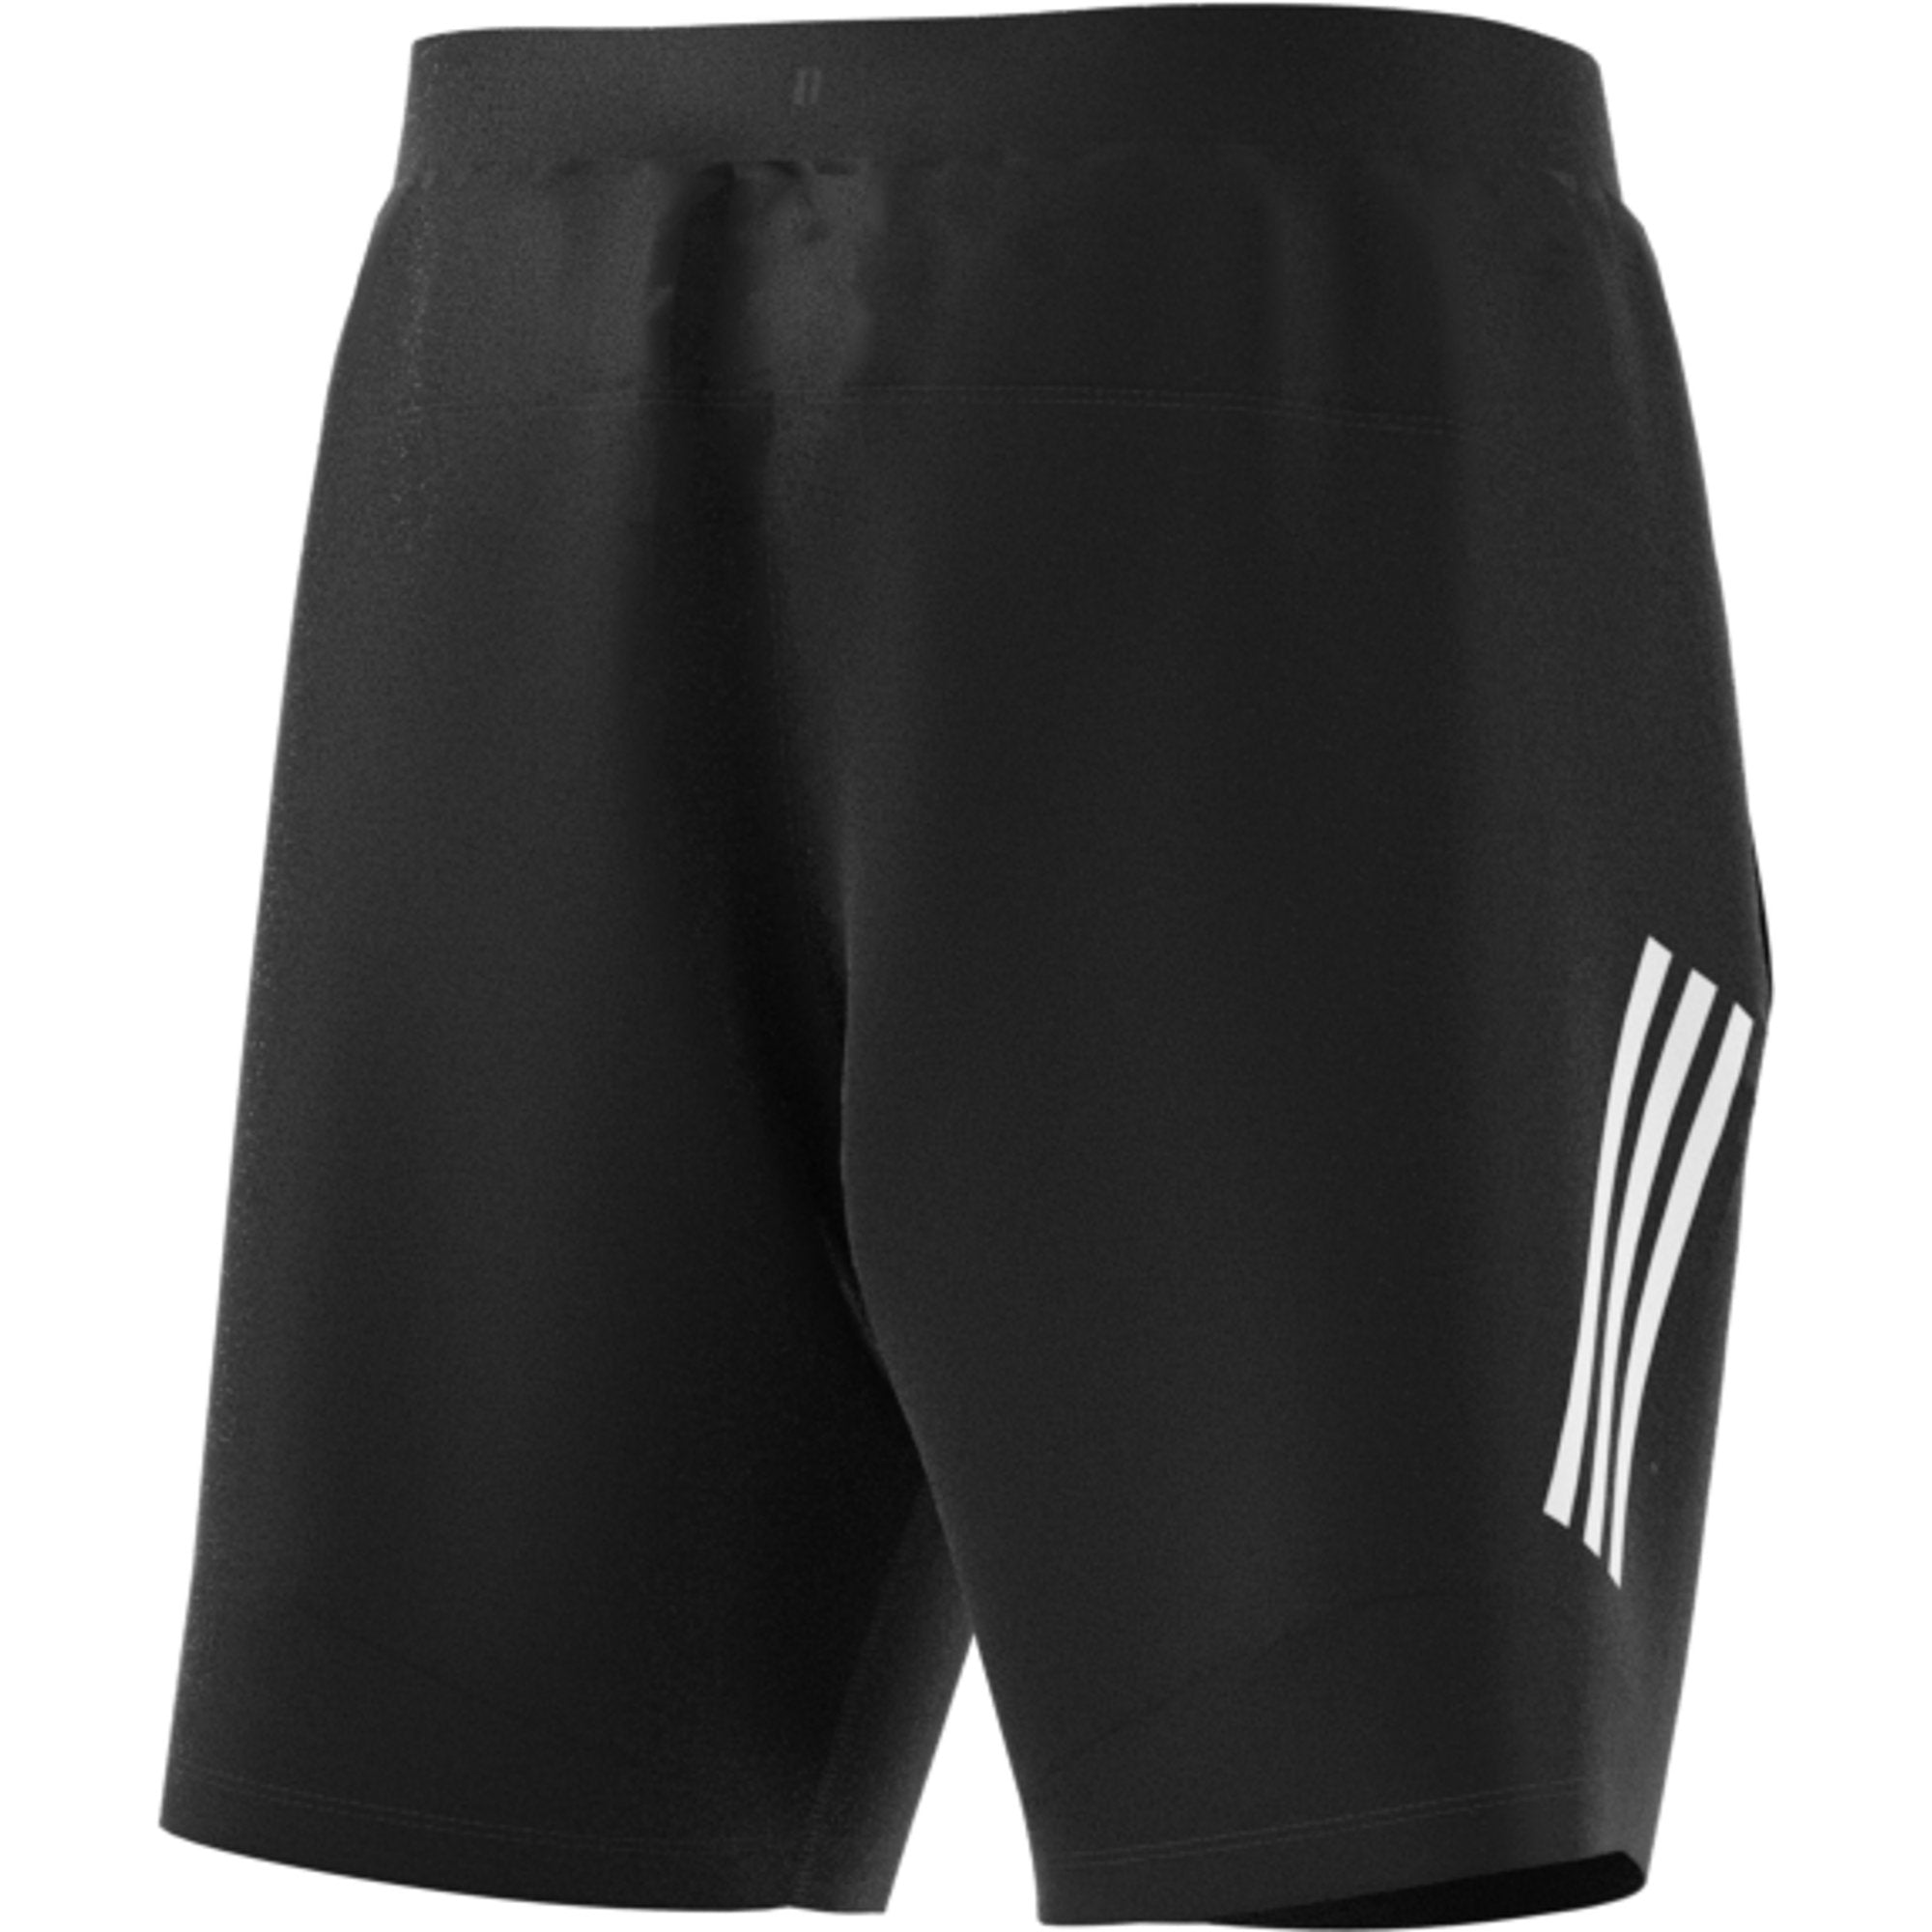 Adidas 4Krft Tech Woven 8-Inch 3S Short - Black/White Sp-ApparelShorts-Men Adidas